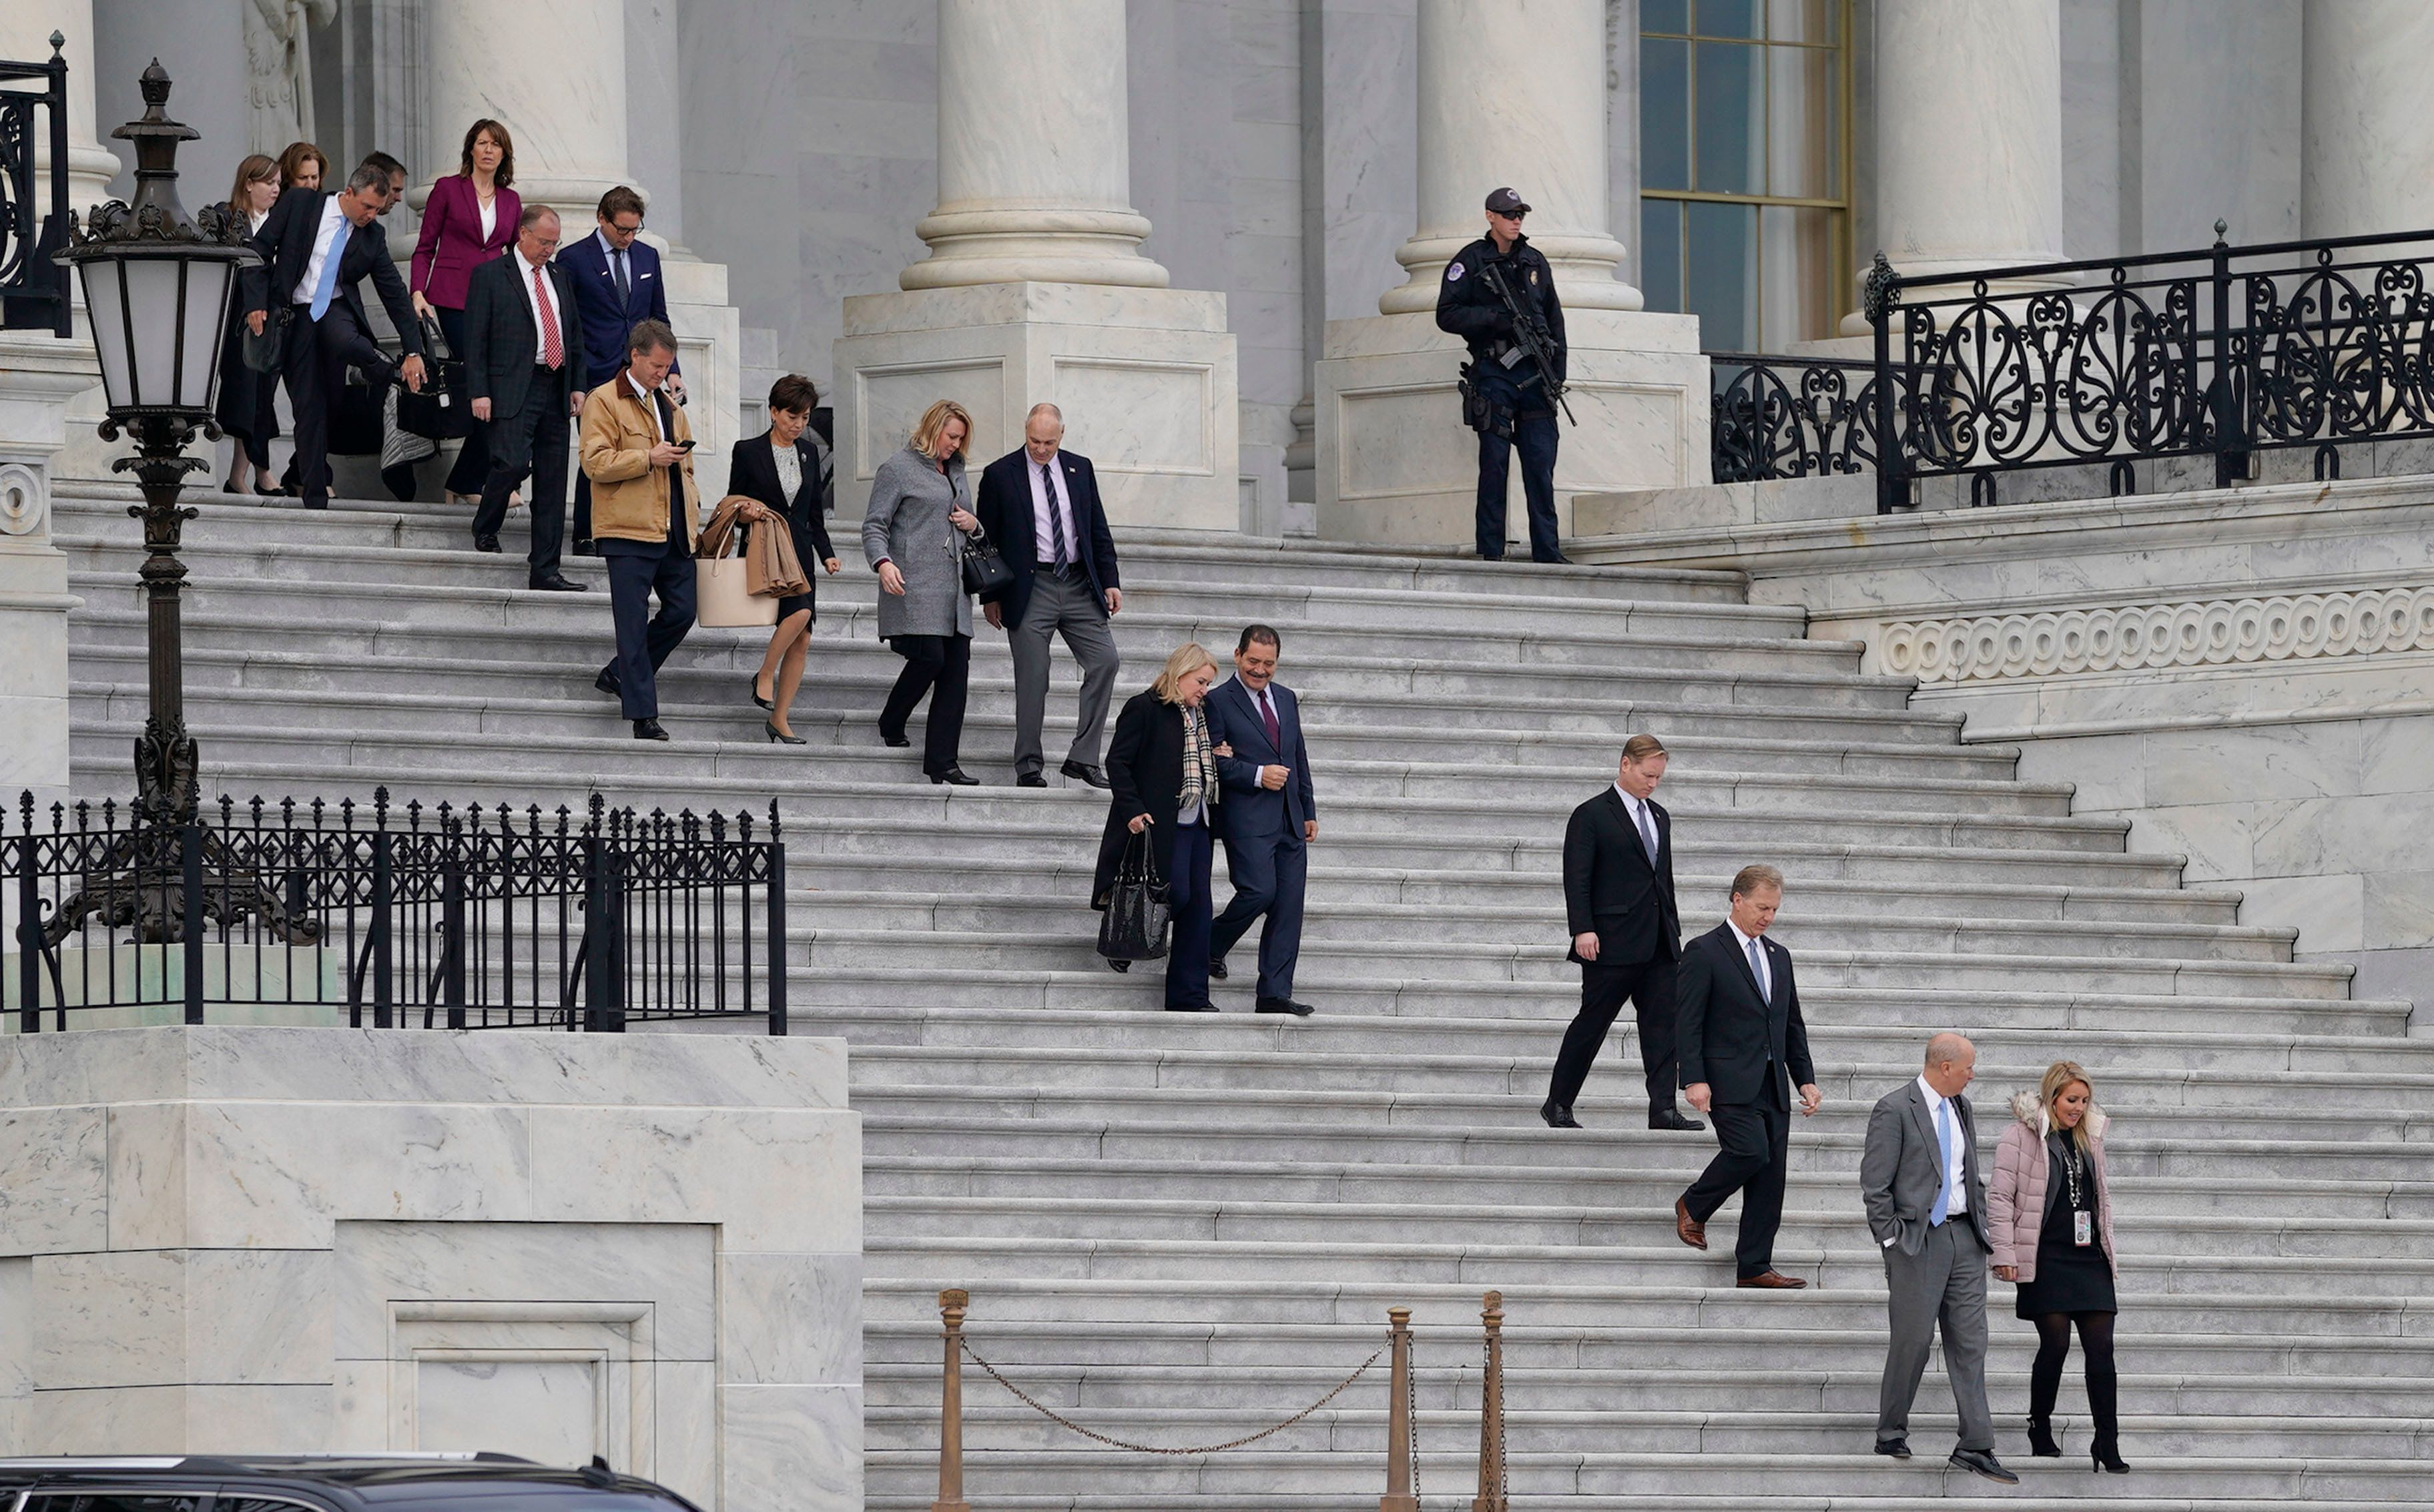 Members of the freshman class of Congress walk out of the Capitol before posing for group photo on Capitol Hill in Washington, Wednesday, Nov. 14, 2018. (AP Photo/Pablo Martinez Monsivais)